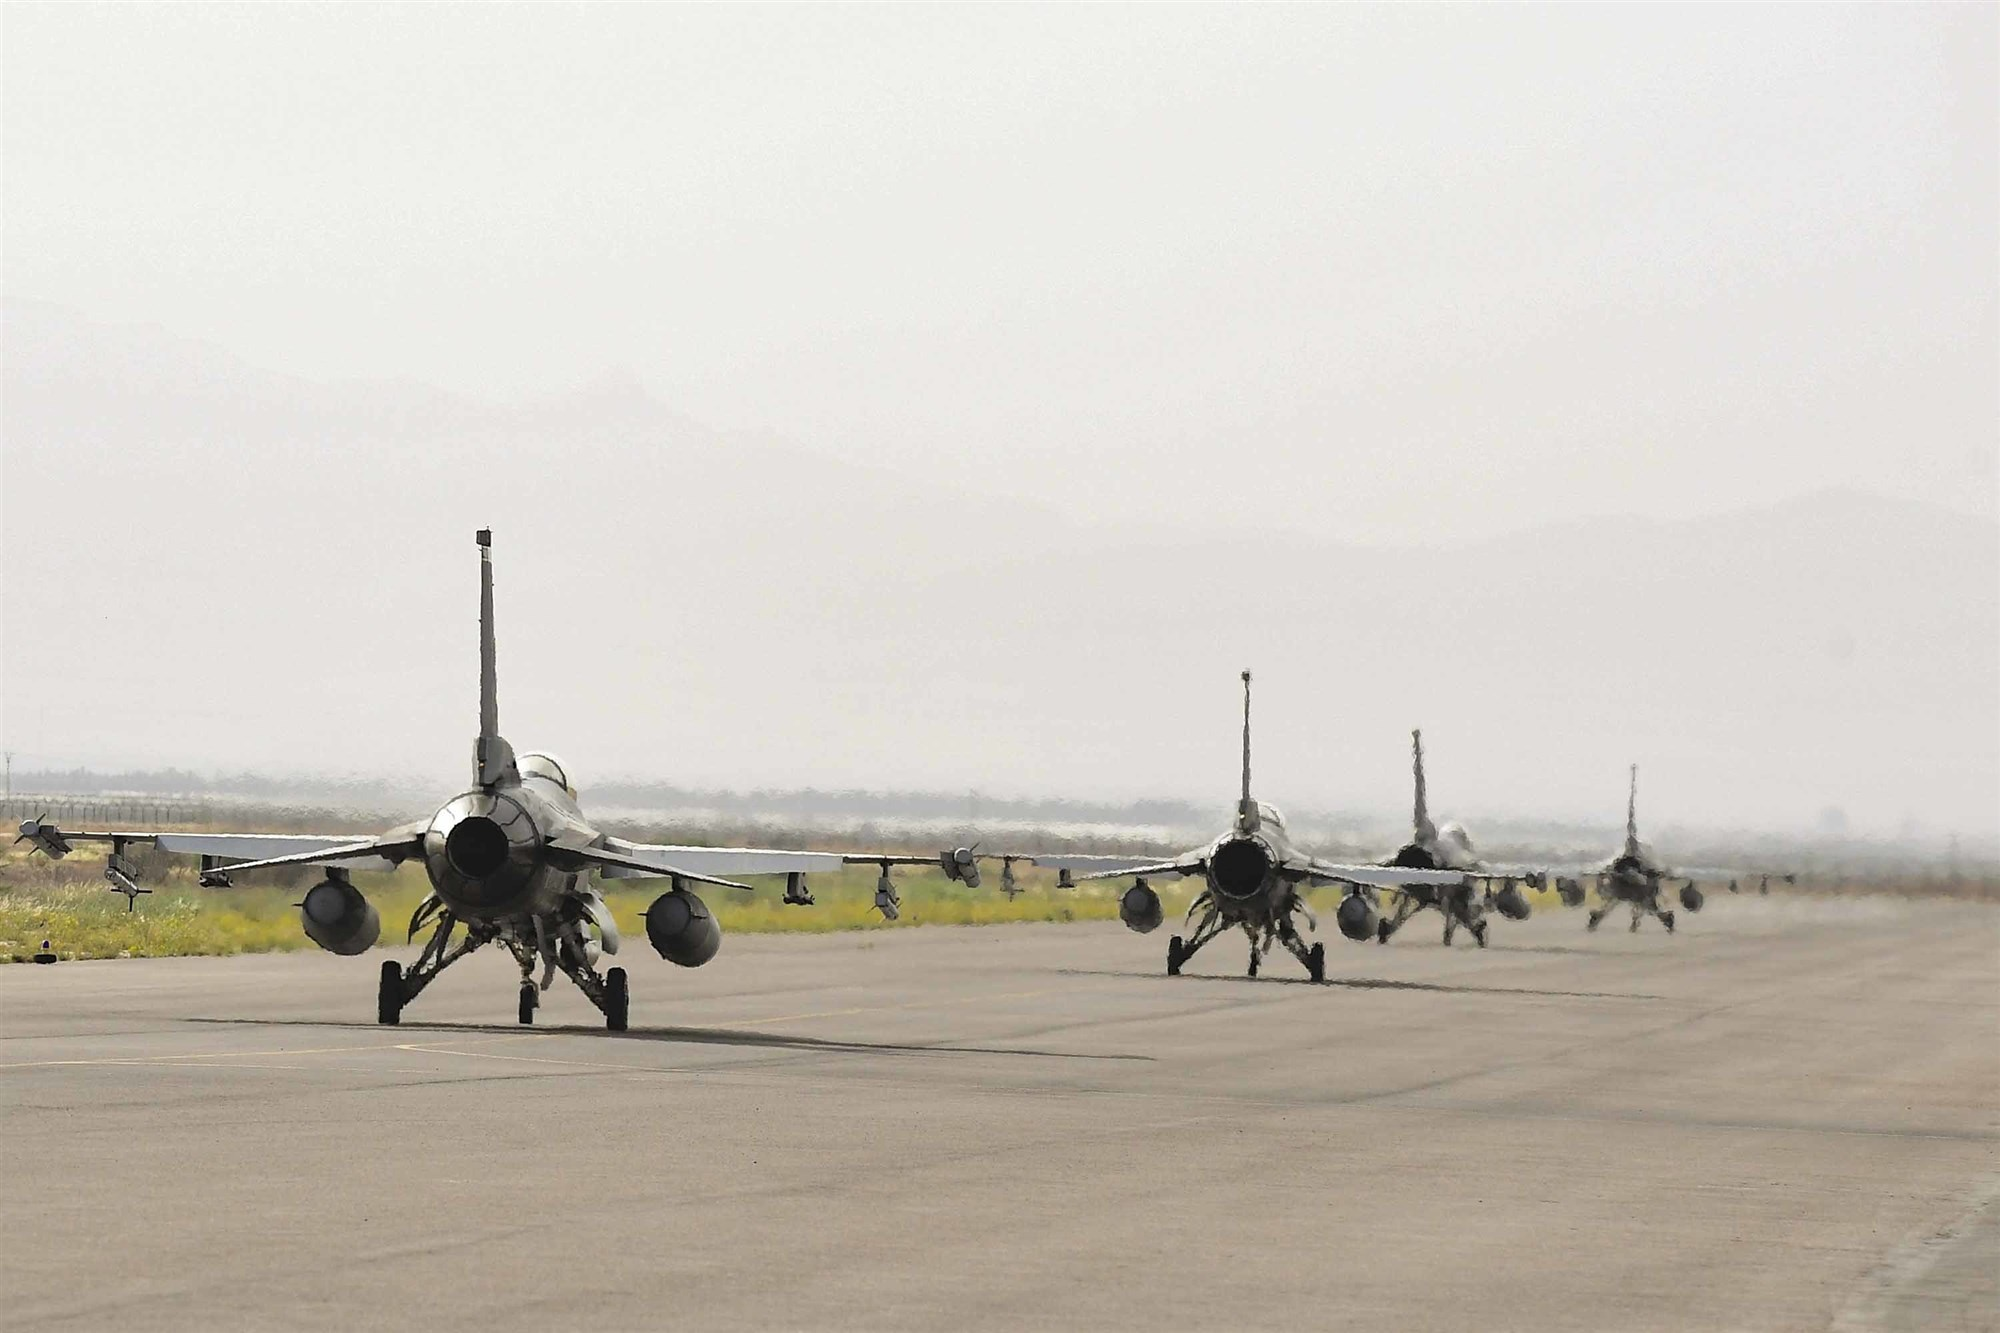 Four F-16C Fighting Falcons from the 555th Expeditionary Fighter Squadron taxi during exercise African Lion 2019 at Ben Guerir Air Base, Morocco, March 25, 2019. African Lion 2019 is a Chairman of the Joint Chiefs of Staff-sponsored, U.S. Africa Command-scheduled, U.S. Marine Corps Forces Europe and Africa-led, joint and combined exercise conducted in the Kingdom of Morocco with a spoke in Tunisia, and armed forces participants in from Canada, France, Senegal, Spain, and the United Kingdom. (U.S. Air Force photo by Staff Sgt. Ceaira Tinsley)